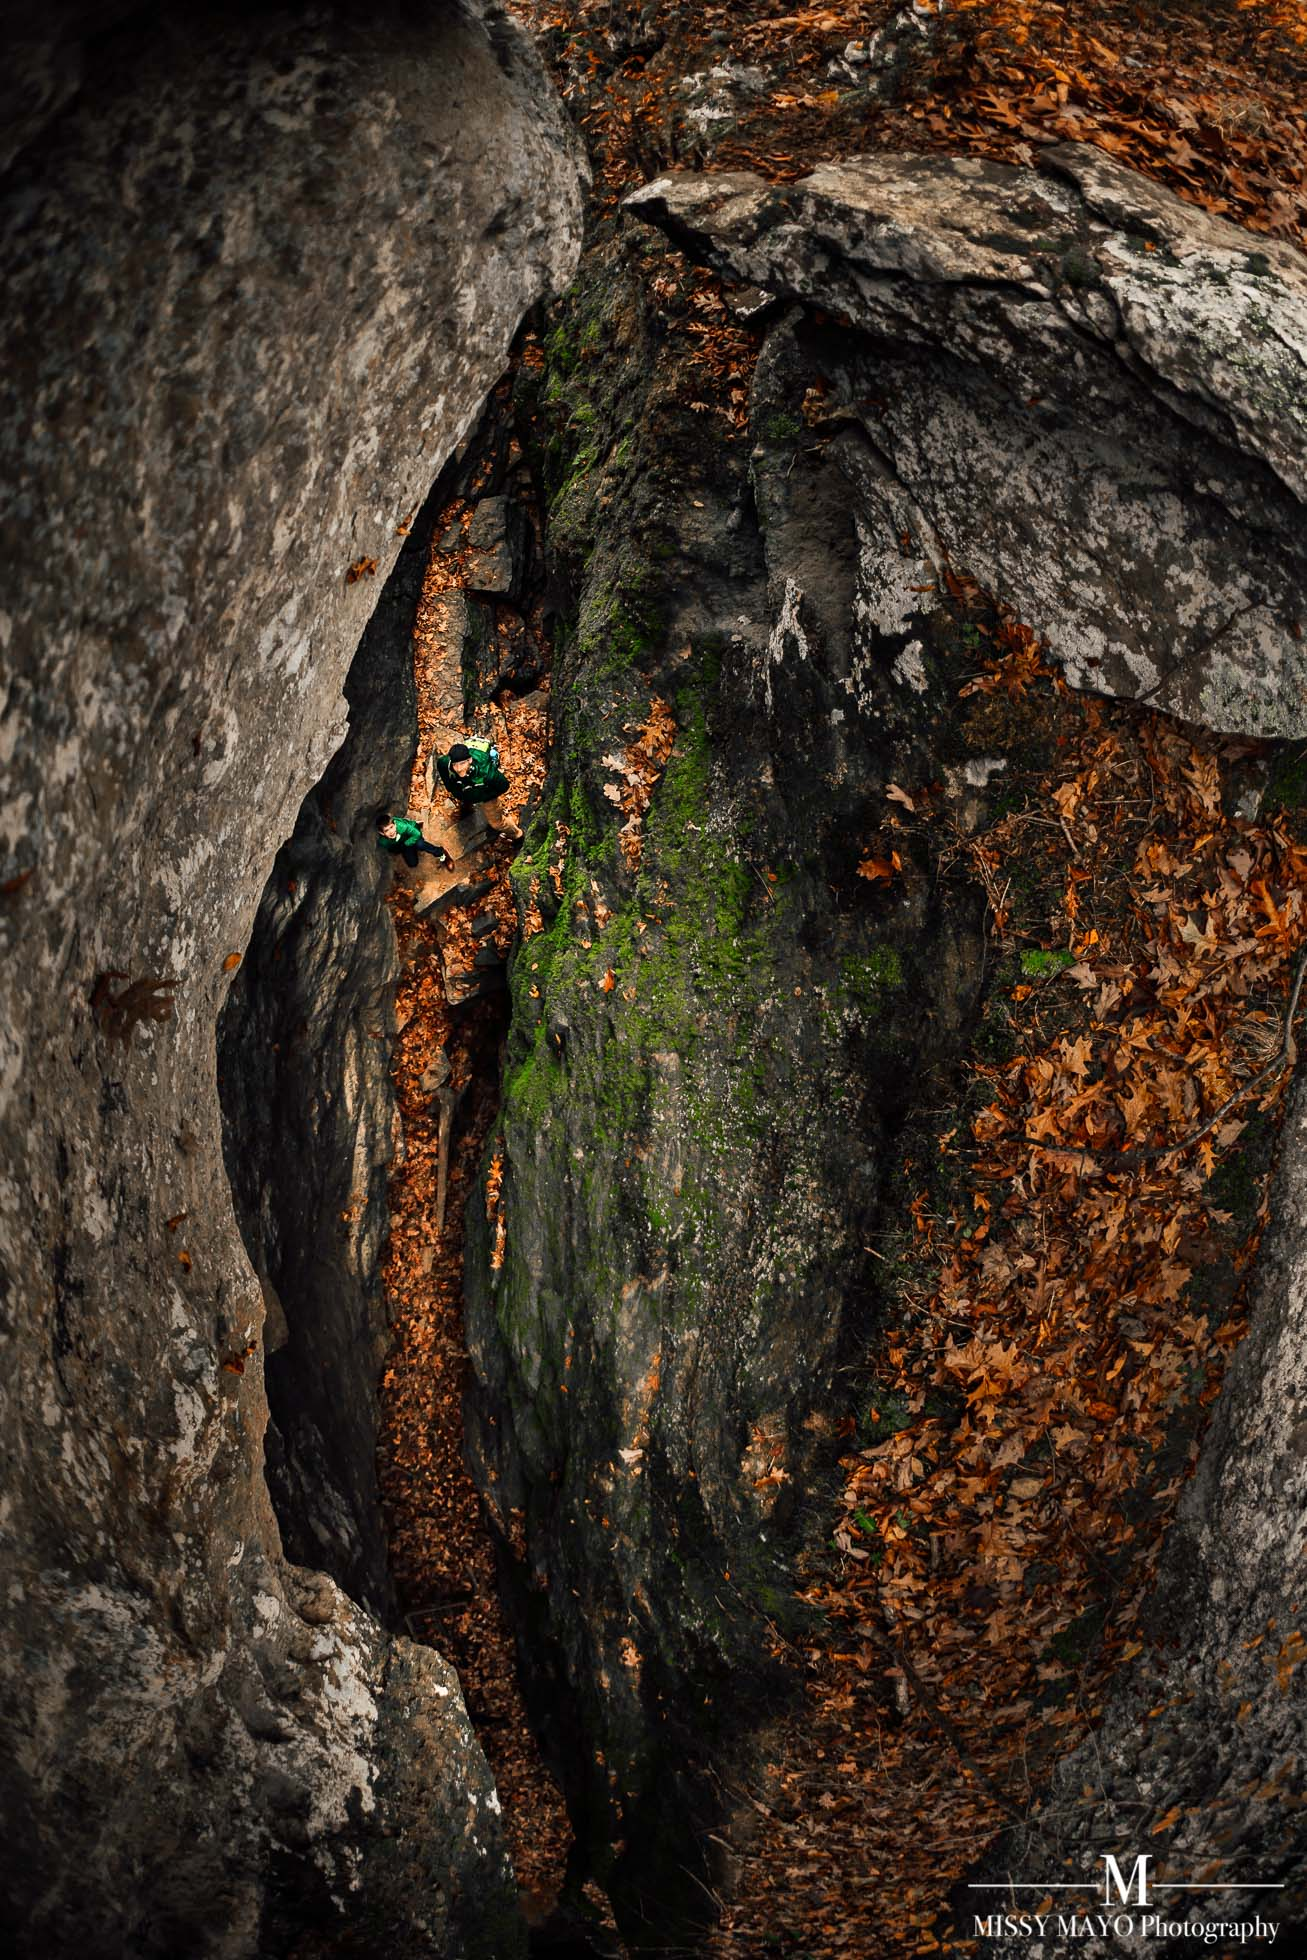 picture taken from above of two hikers exploring a rocky crevice